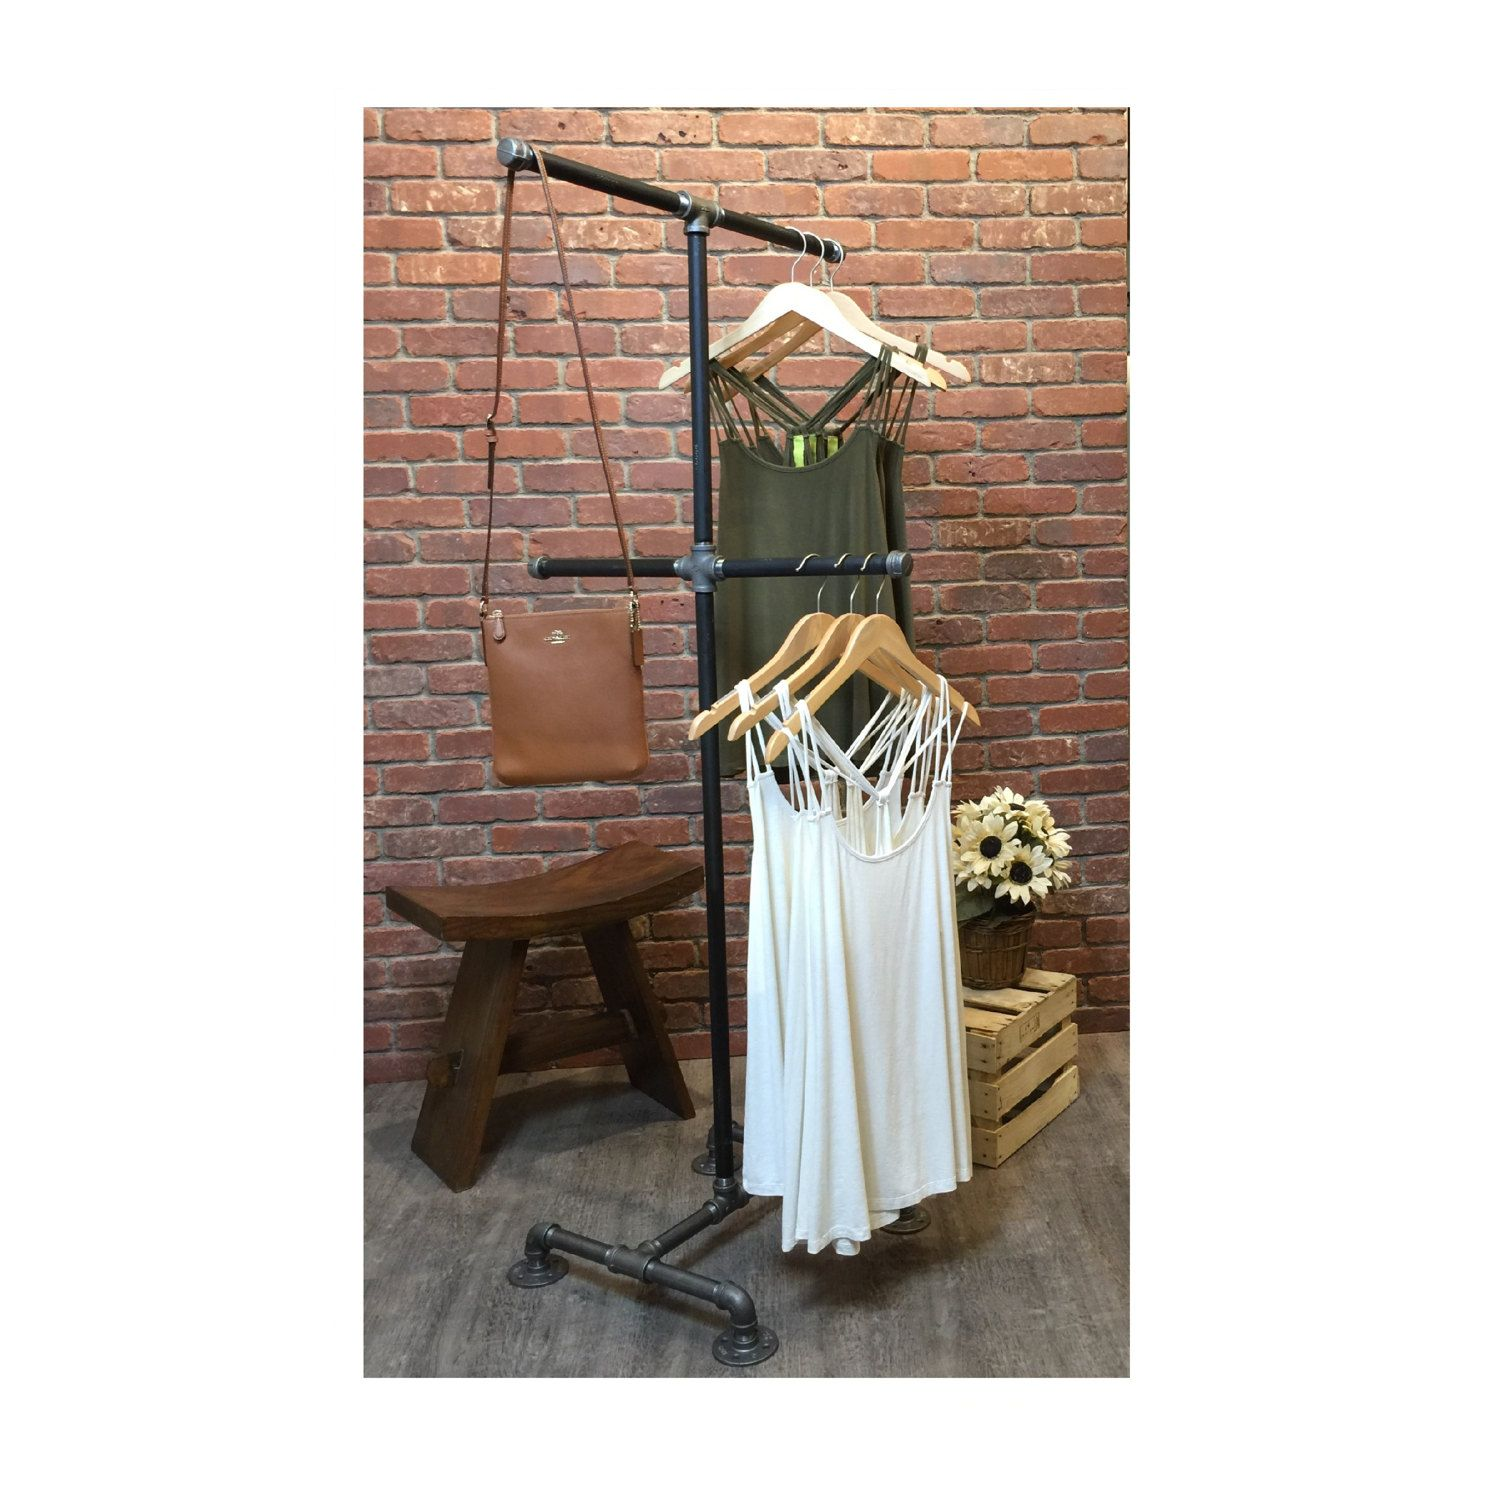 Industrial pipe clothing rack by william roberts vintage this pipe clothes rack is made using black pipe and pipe fittings this extremely durable and